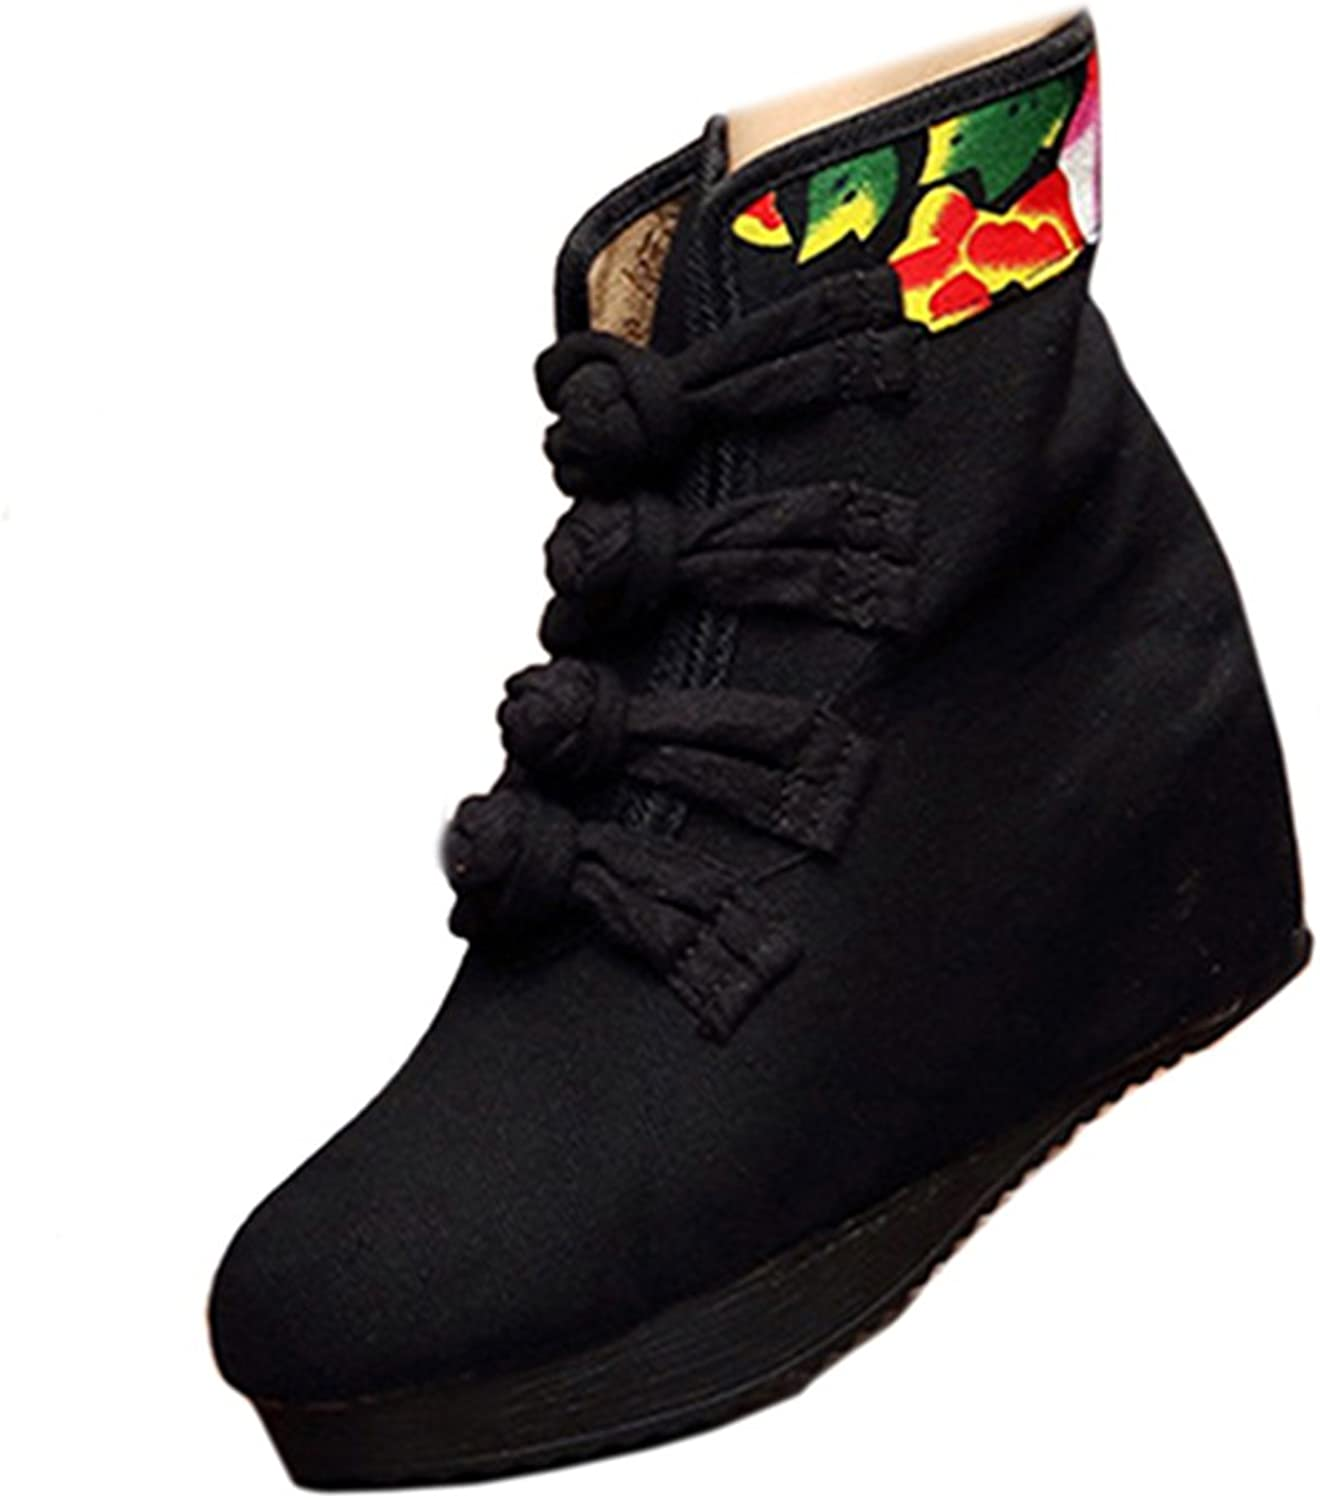 Shenghuajie Four shoeslace Vintage Beijing Cloth shoes Embroidered Boots Macrame Black Thin shoes